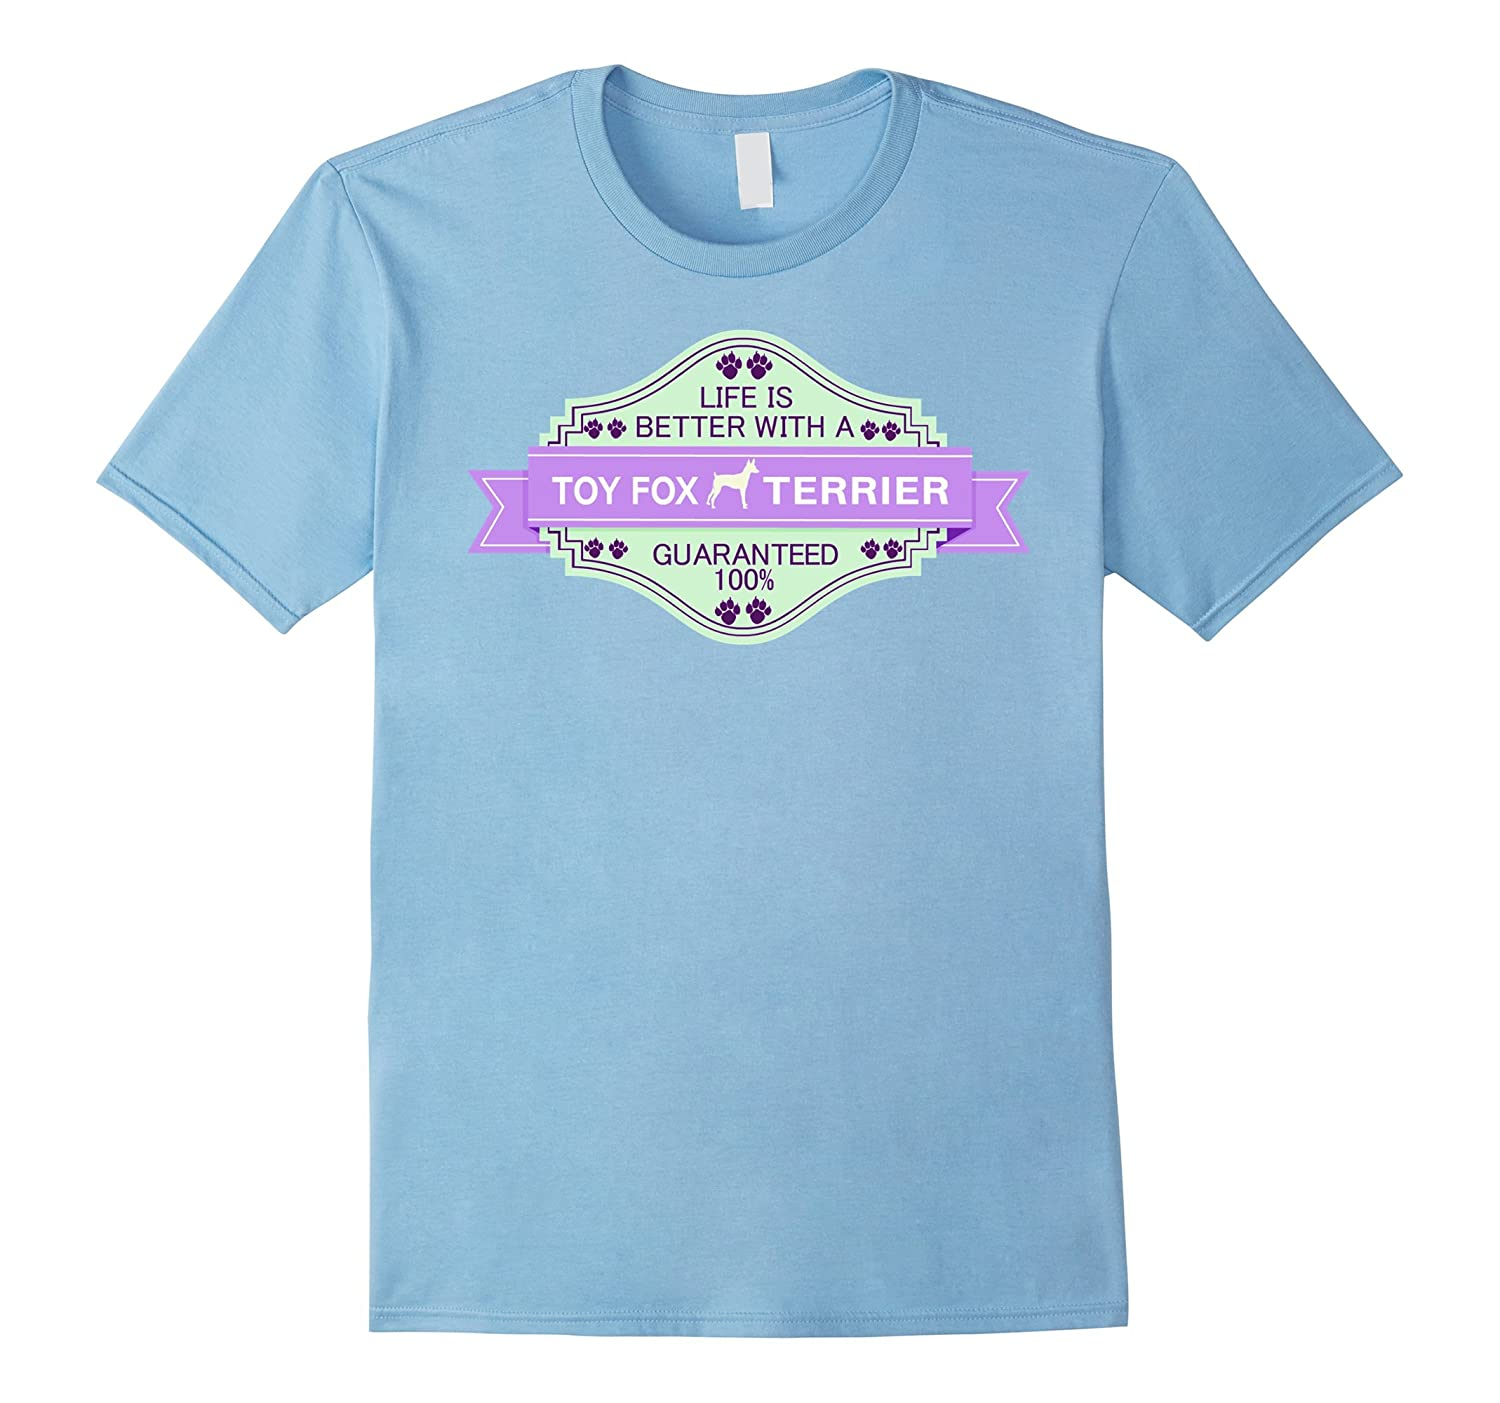 Toy Fox Terrier shirt | Life is better with a Toy Fox Terrie-Art